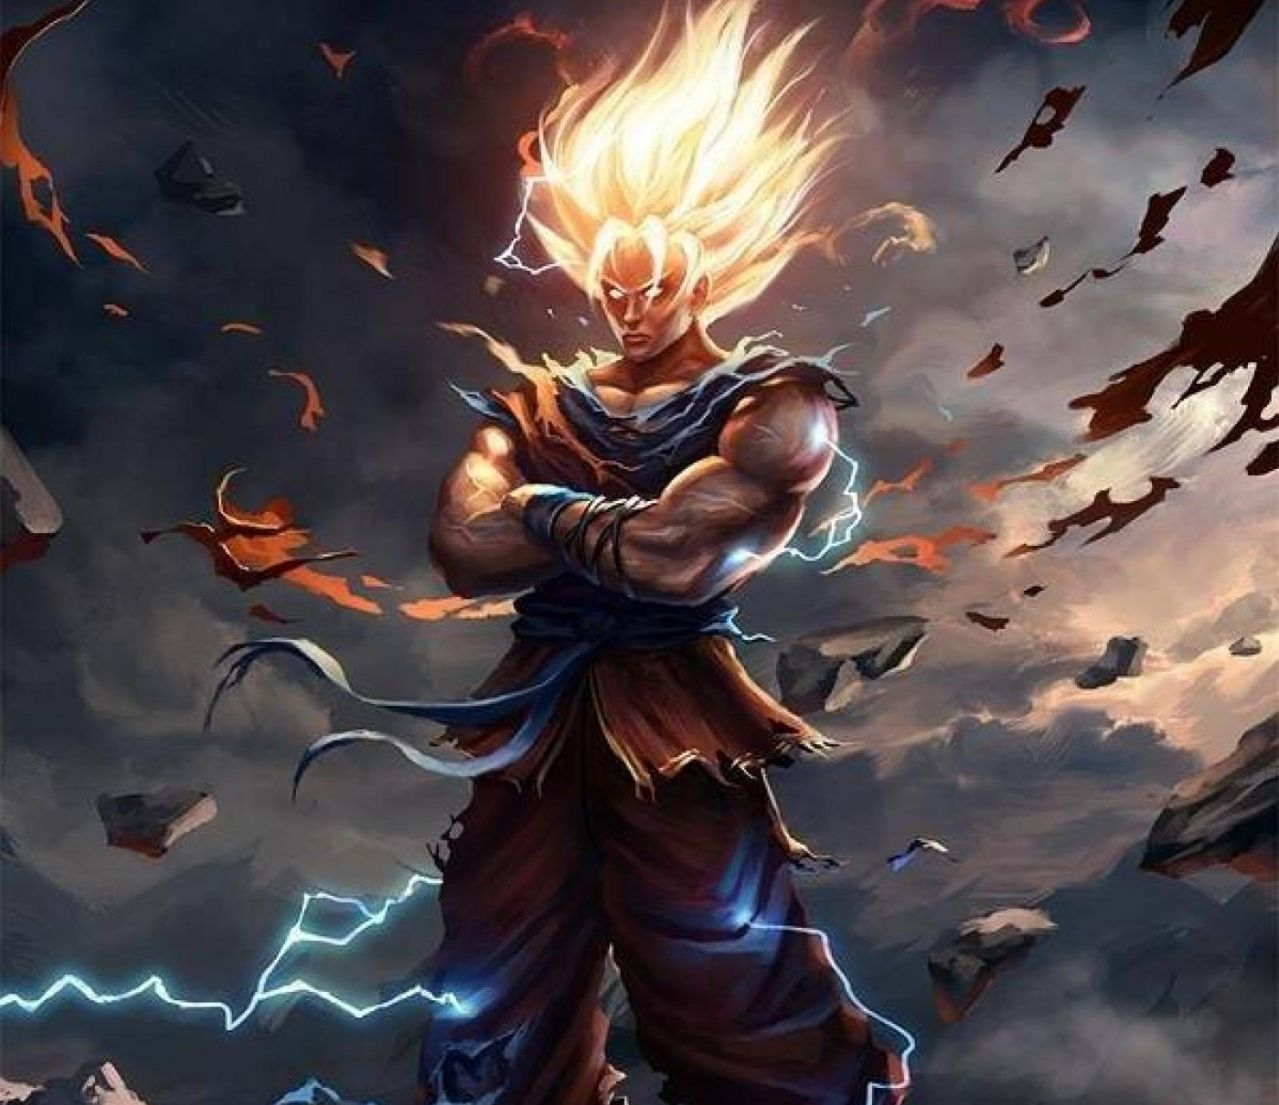 dragon ball super wallpaper qw Pinterest Dragon ball